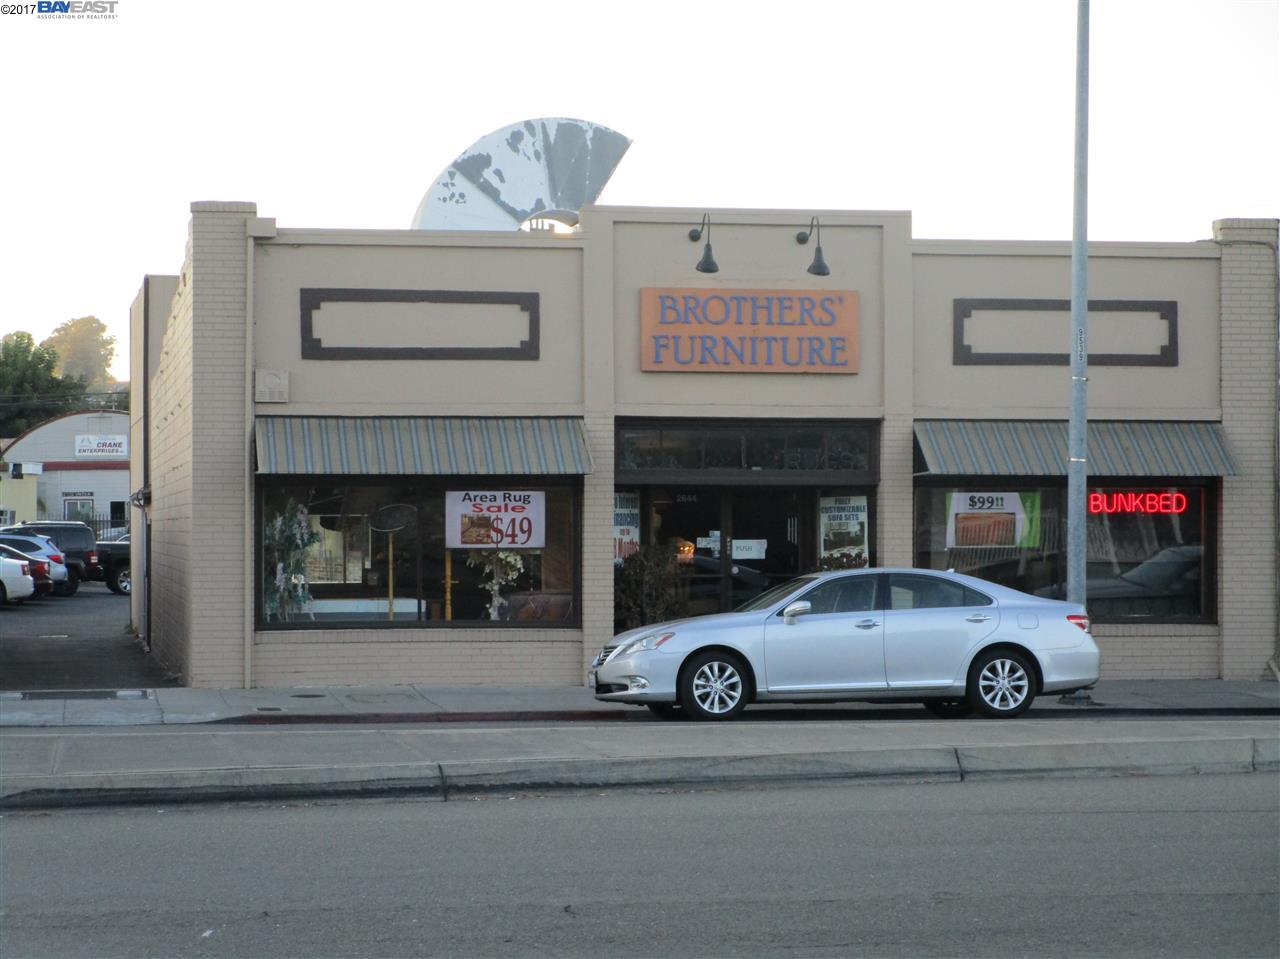 Commercial for Sale at 2644 CASTRO VALLEY BLVD 2644 CASTRO VALLEY BLVD Castro Valley, California 94546 United States